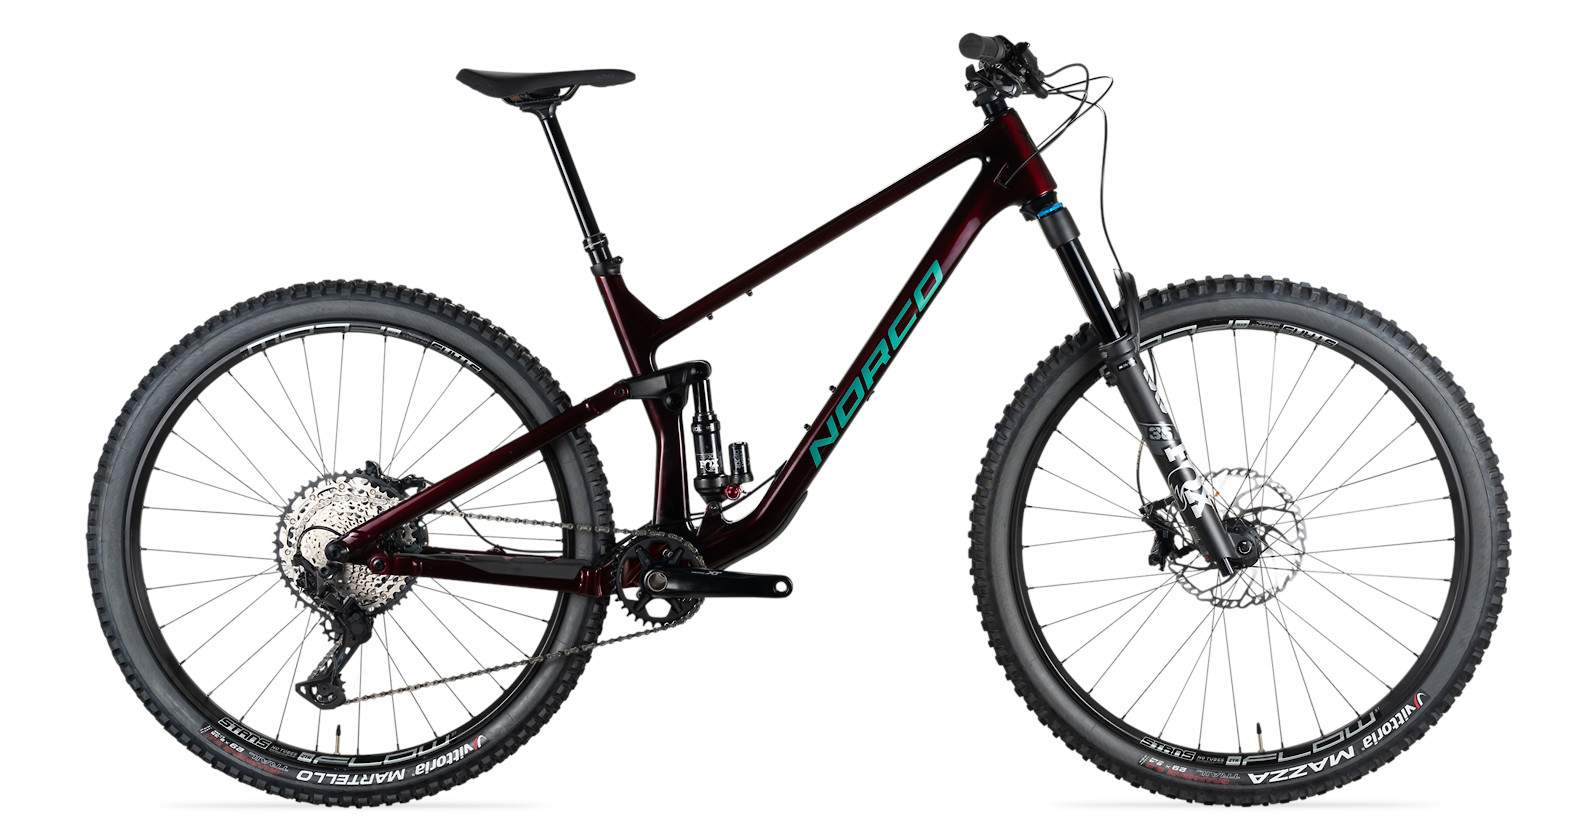 2021 Norco Optic C2 Shimano (Red/Green)